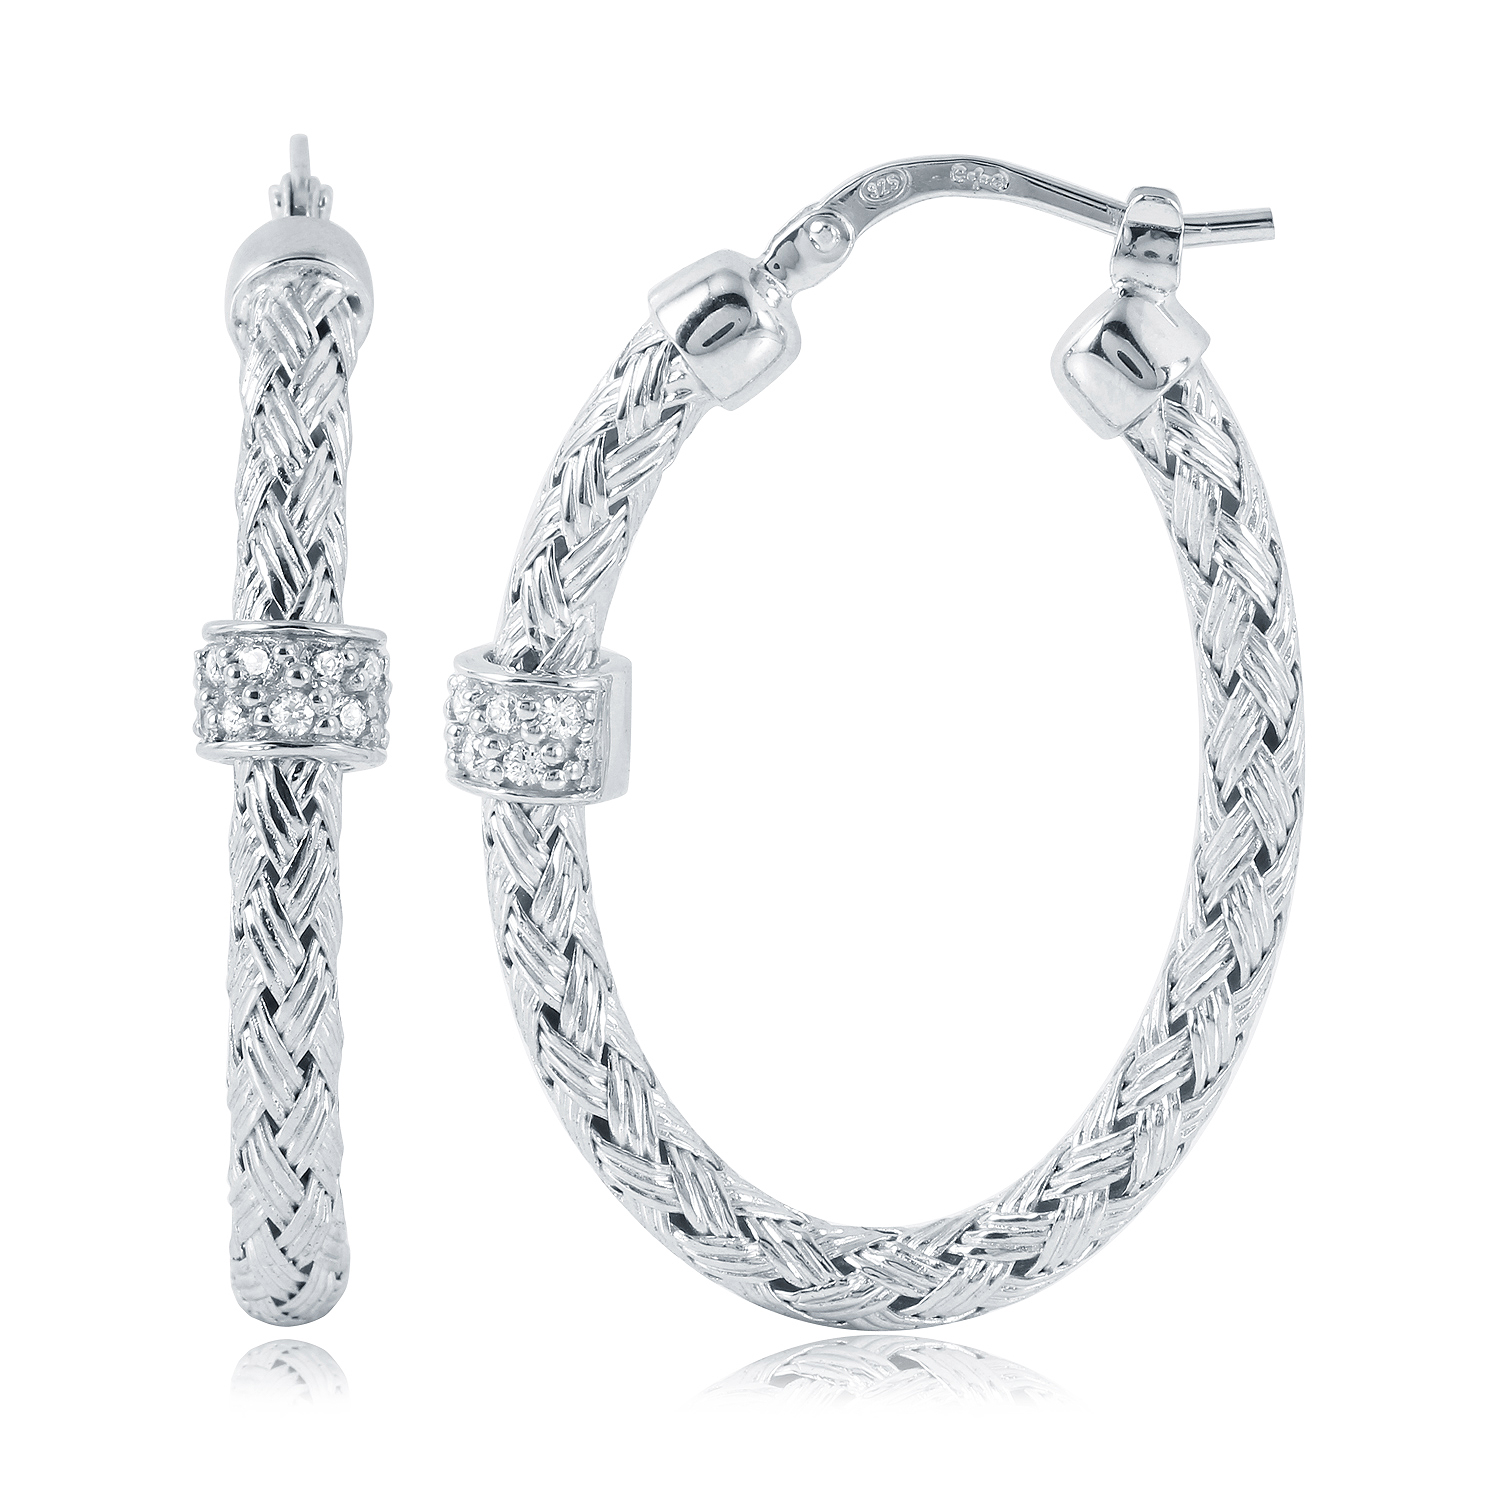 CHARLES GARNIER - Sterling Silver Oval Hoop Earrings, 35mm